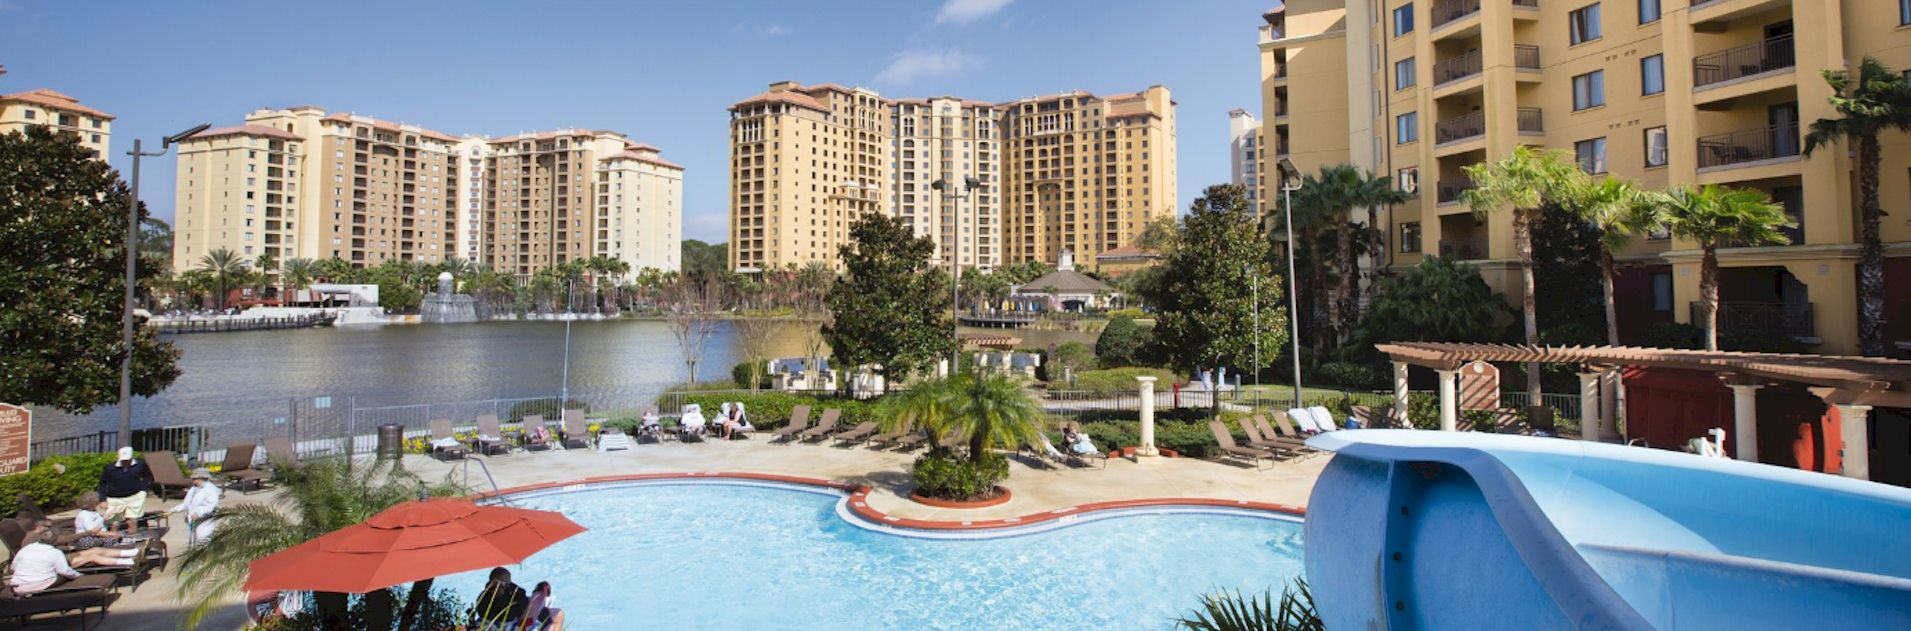 wyndham-bonnet-creek-vacation-resort-rental-bg2